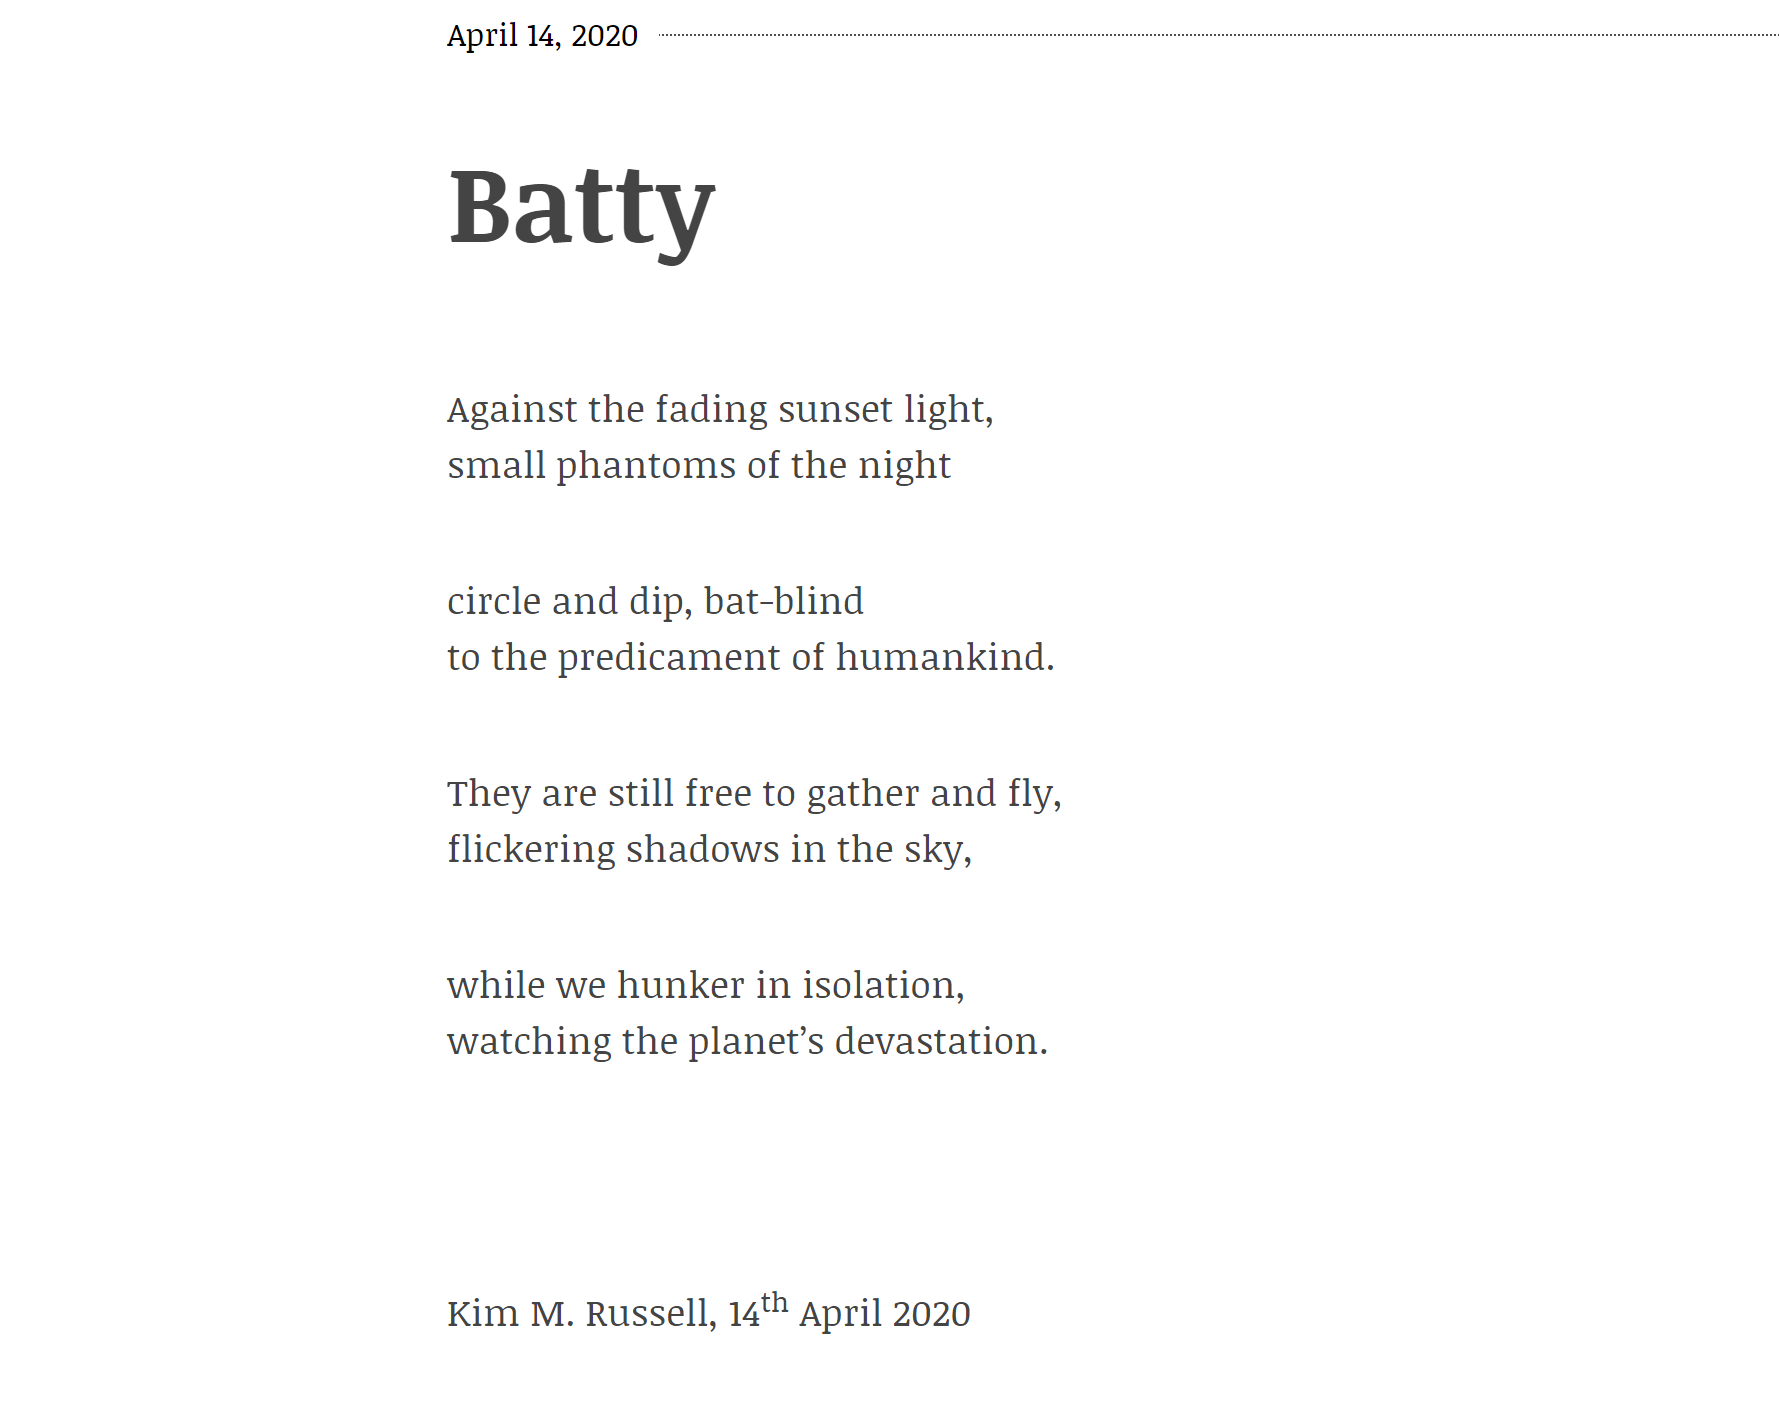 Batty by Kim Russell